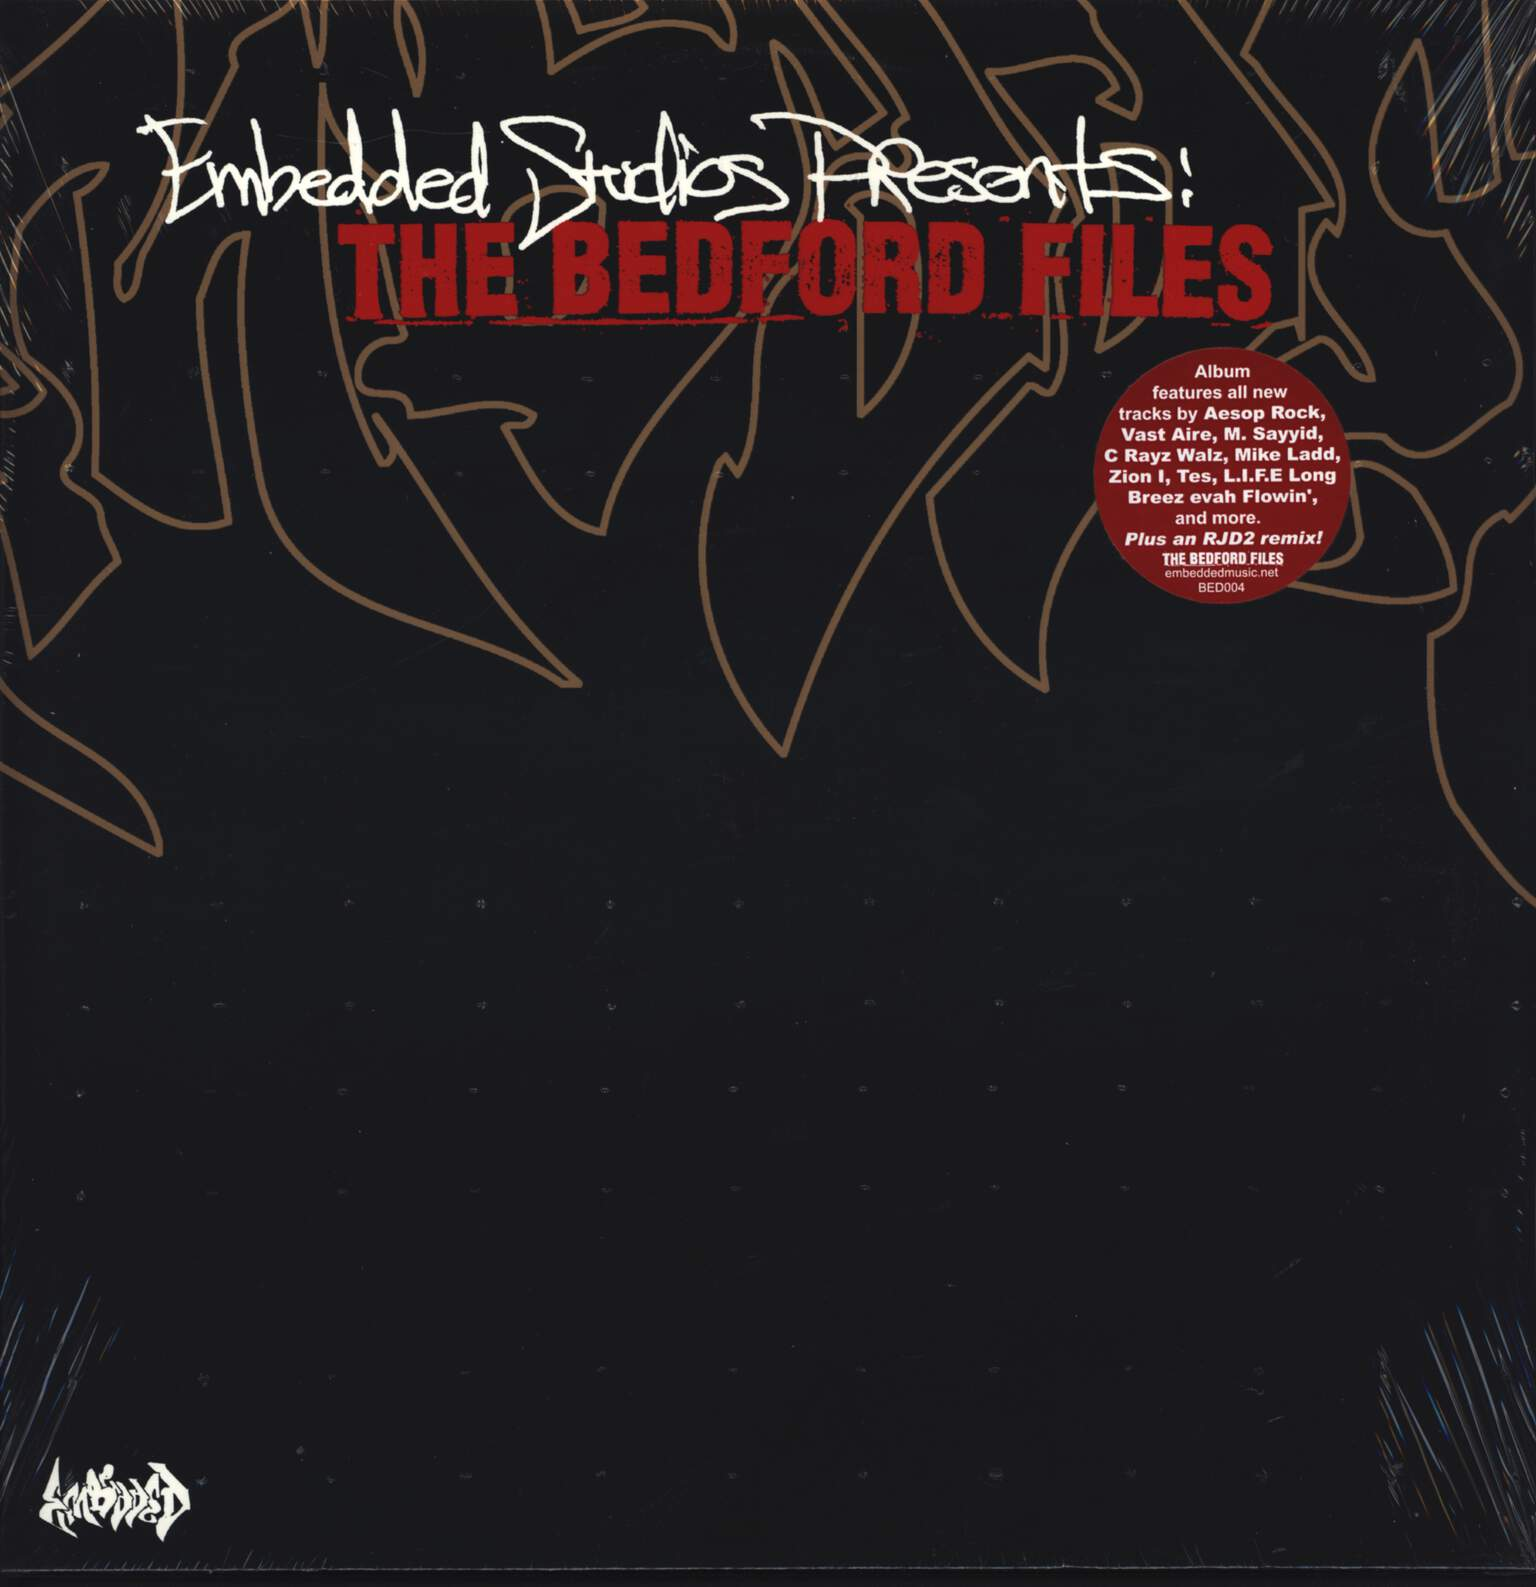 Various: The Bedford Files, LP (Vinyl)